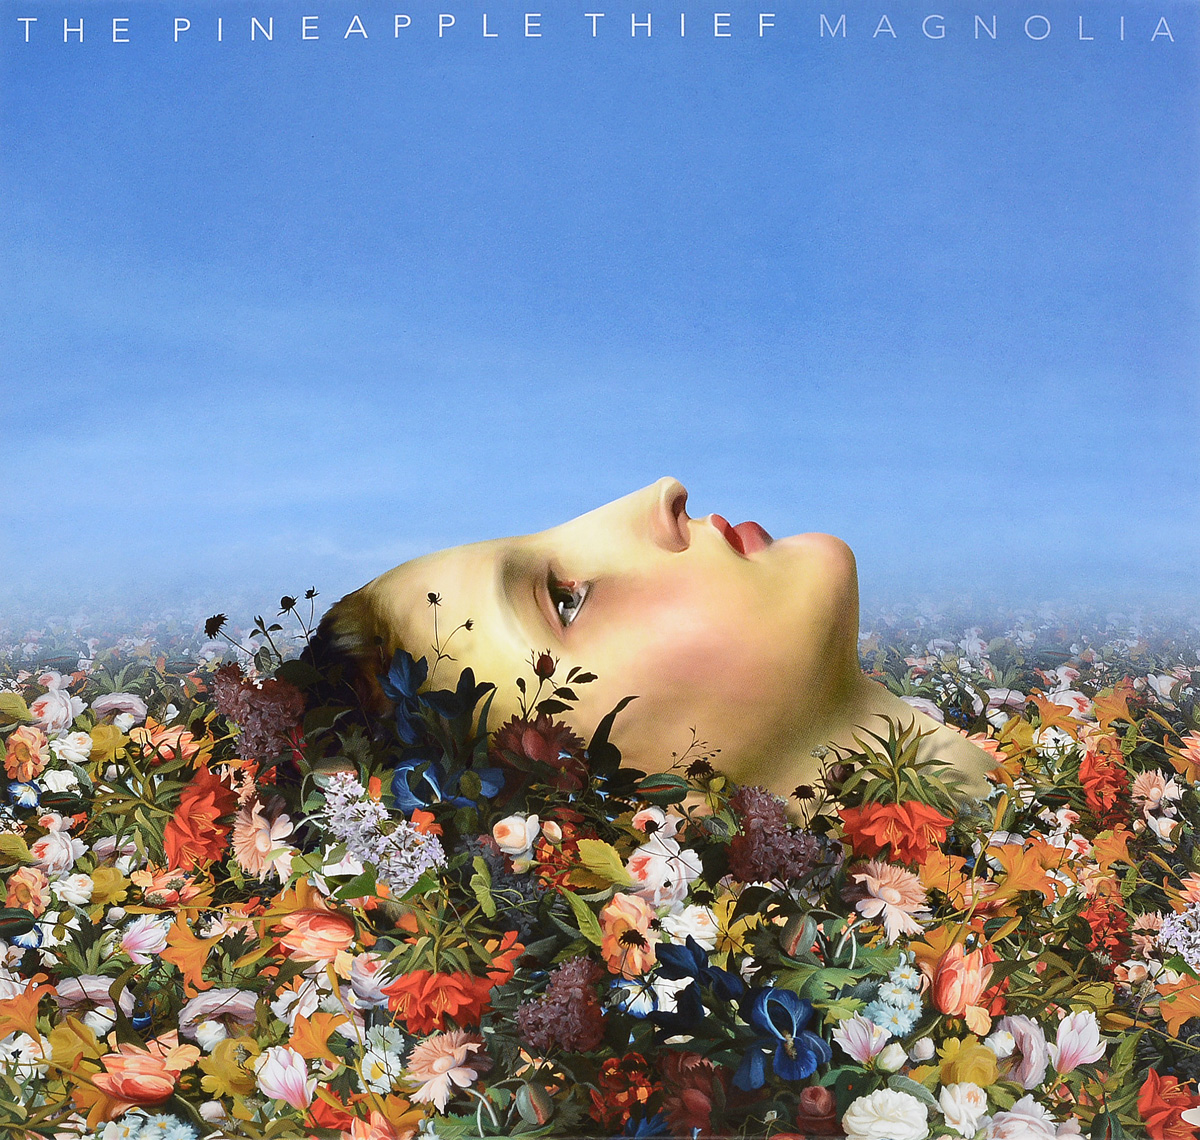 The Pineapple Thief The Pineapple Thief. Magnolia (2 LP) the grave thief